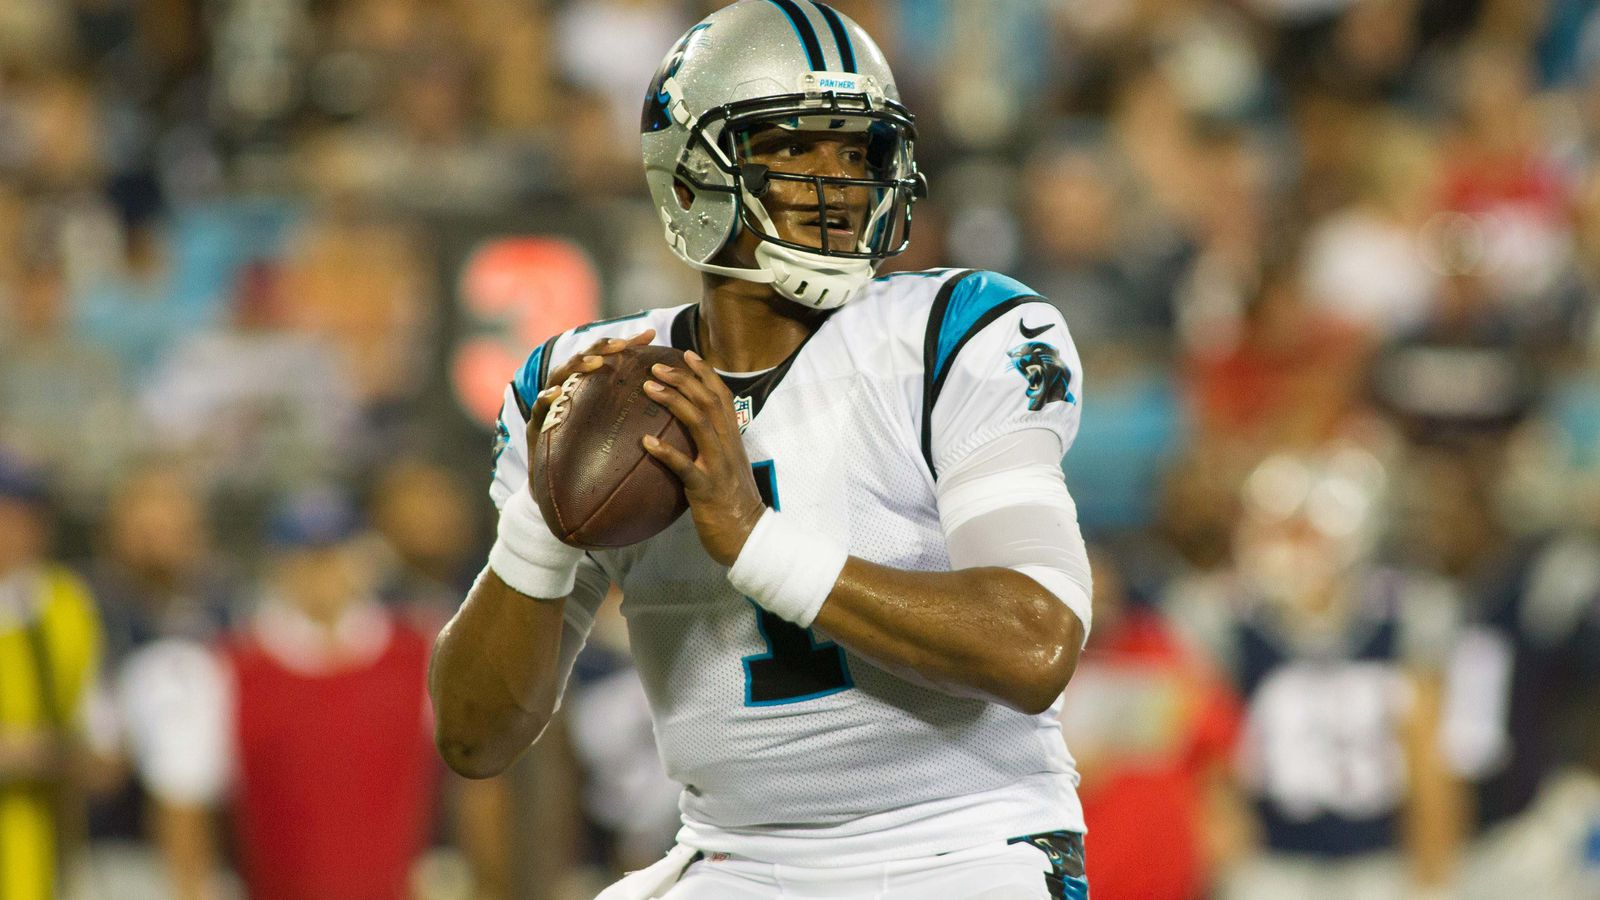 The Carolina Panthers are looking for sweet revenge